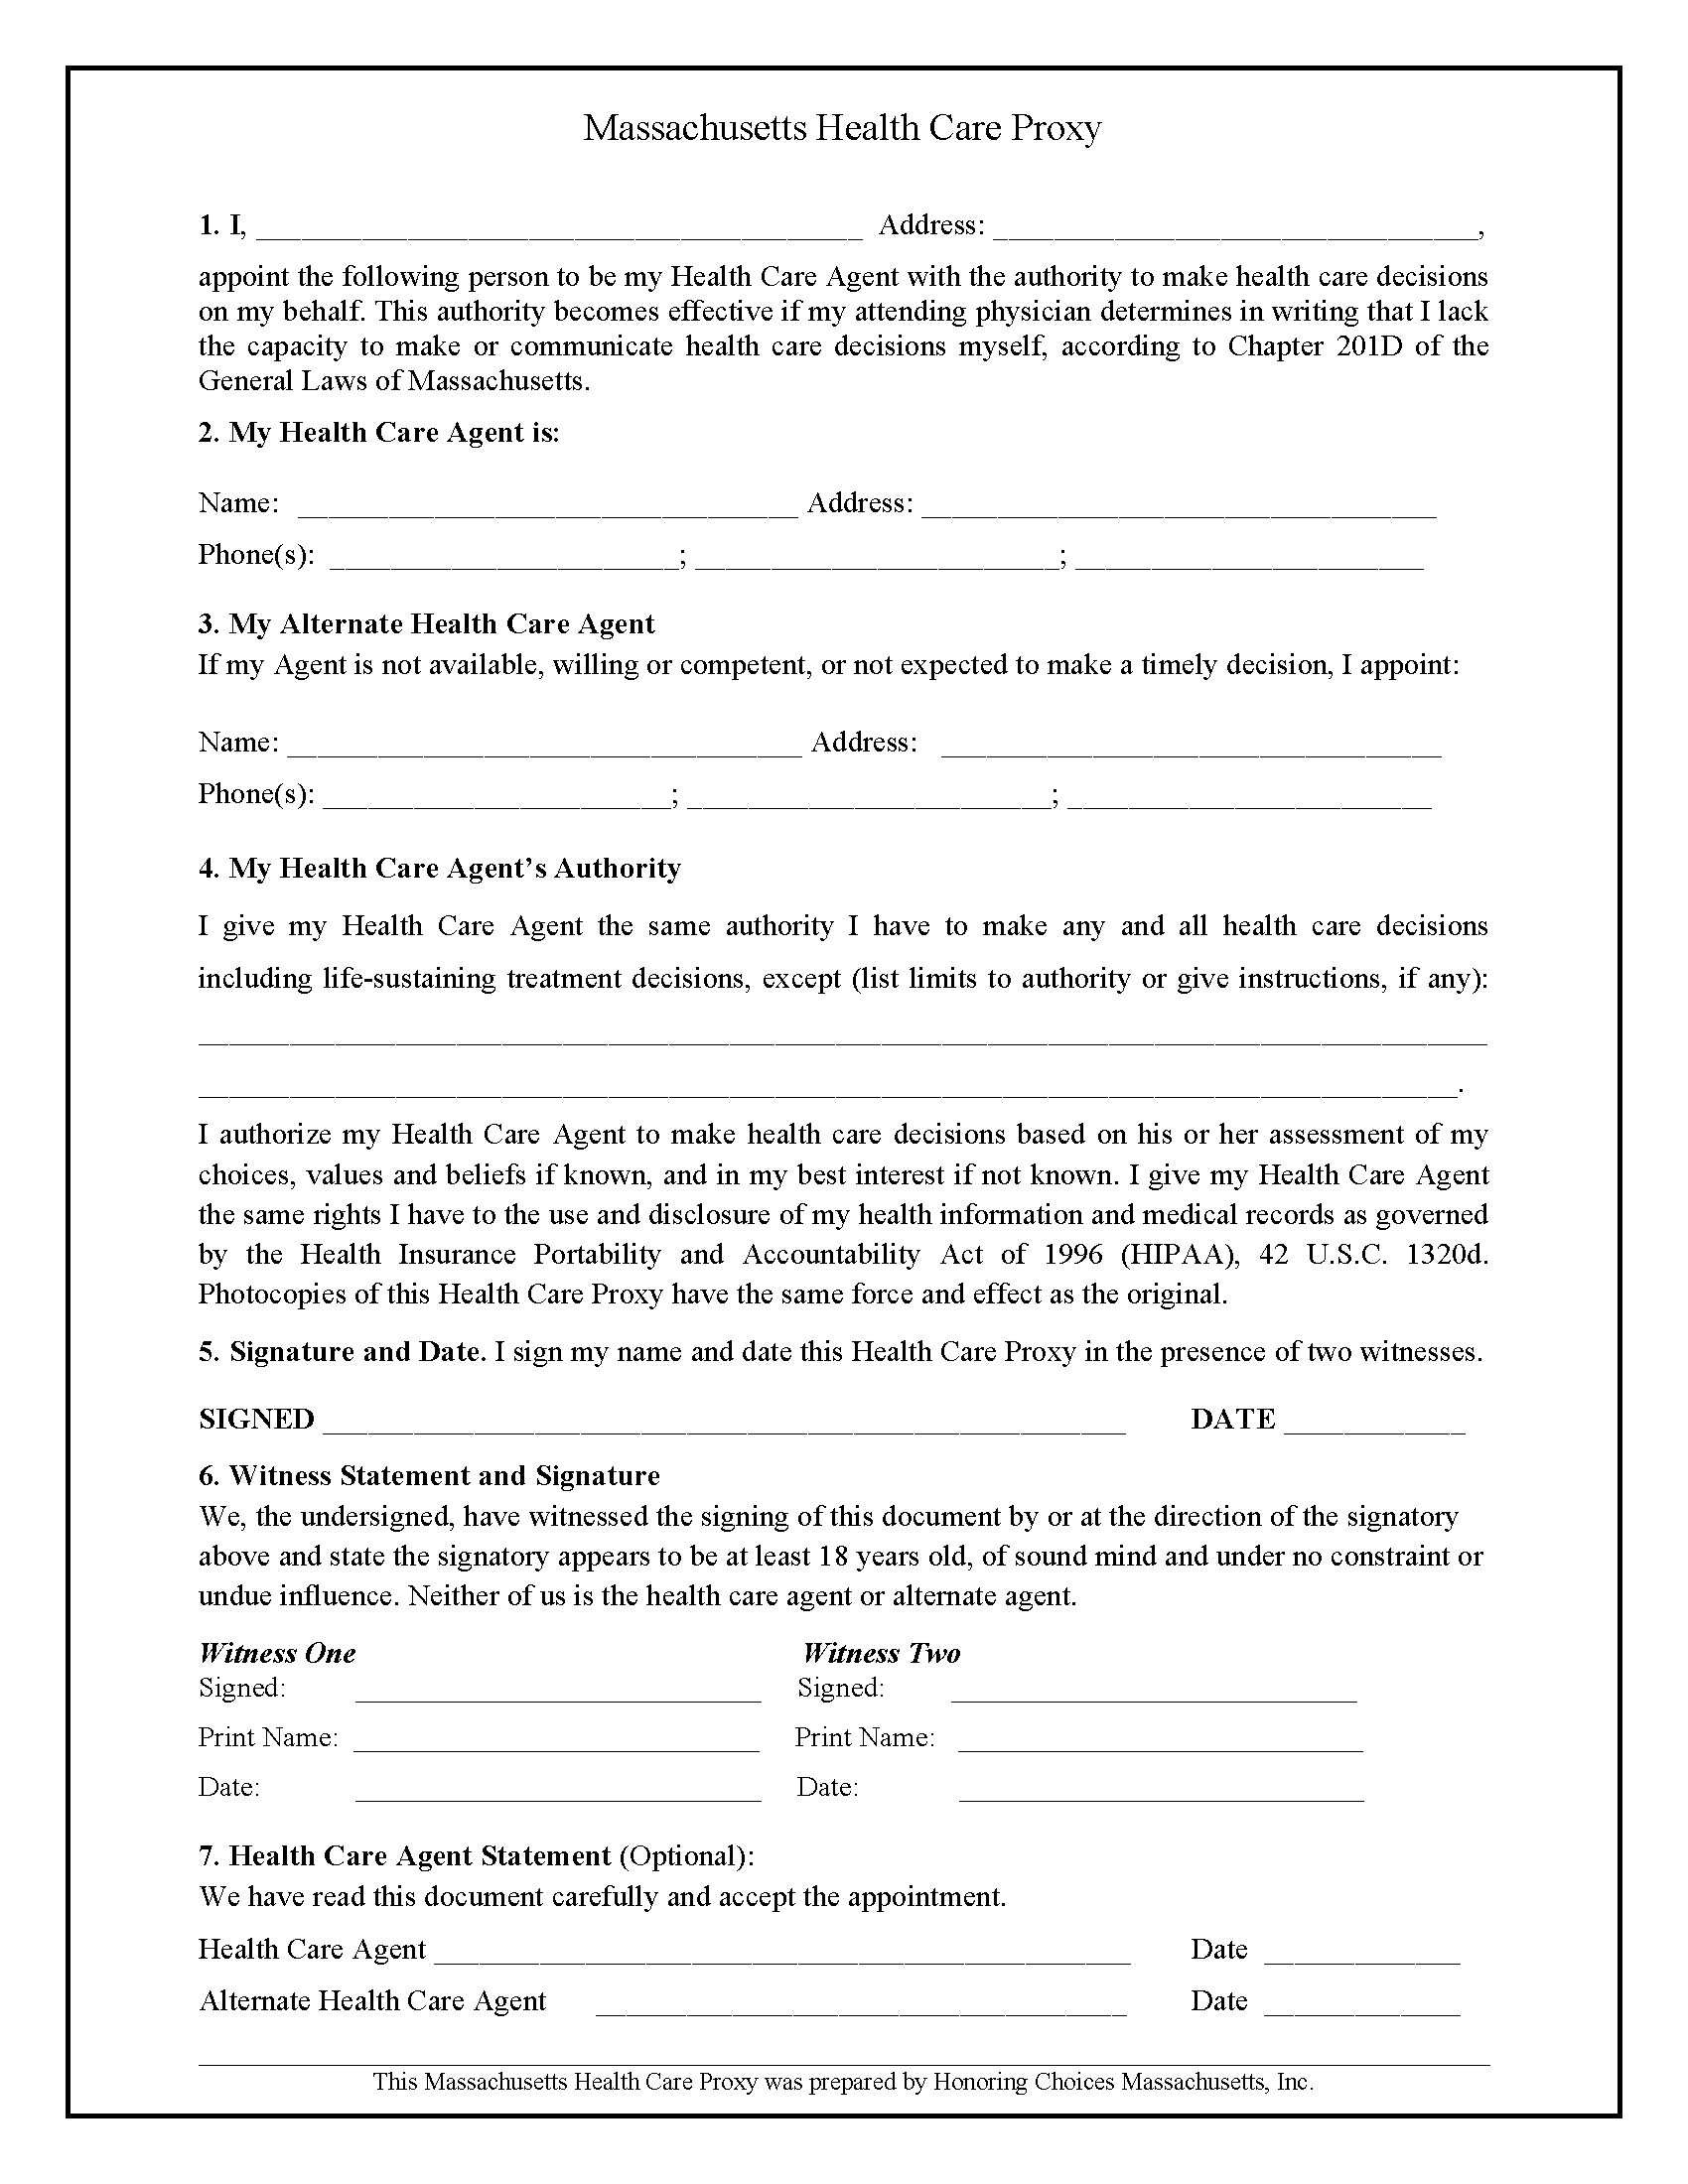 Massachusetts Health Care Power of Attorney Form